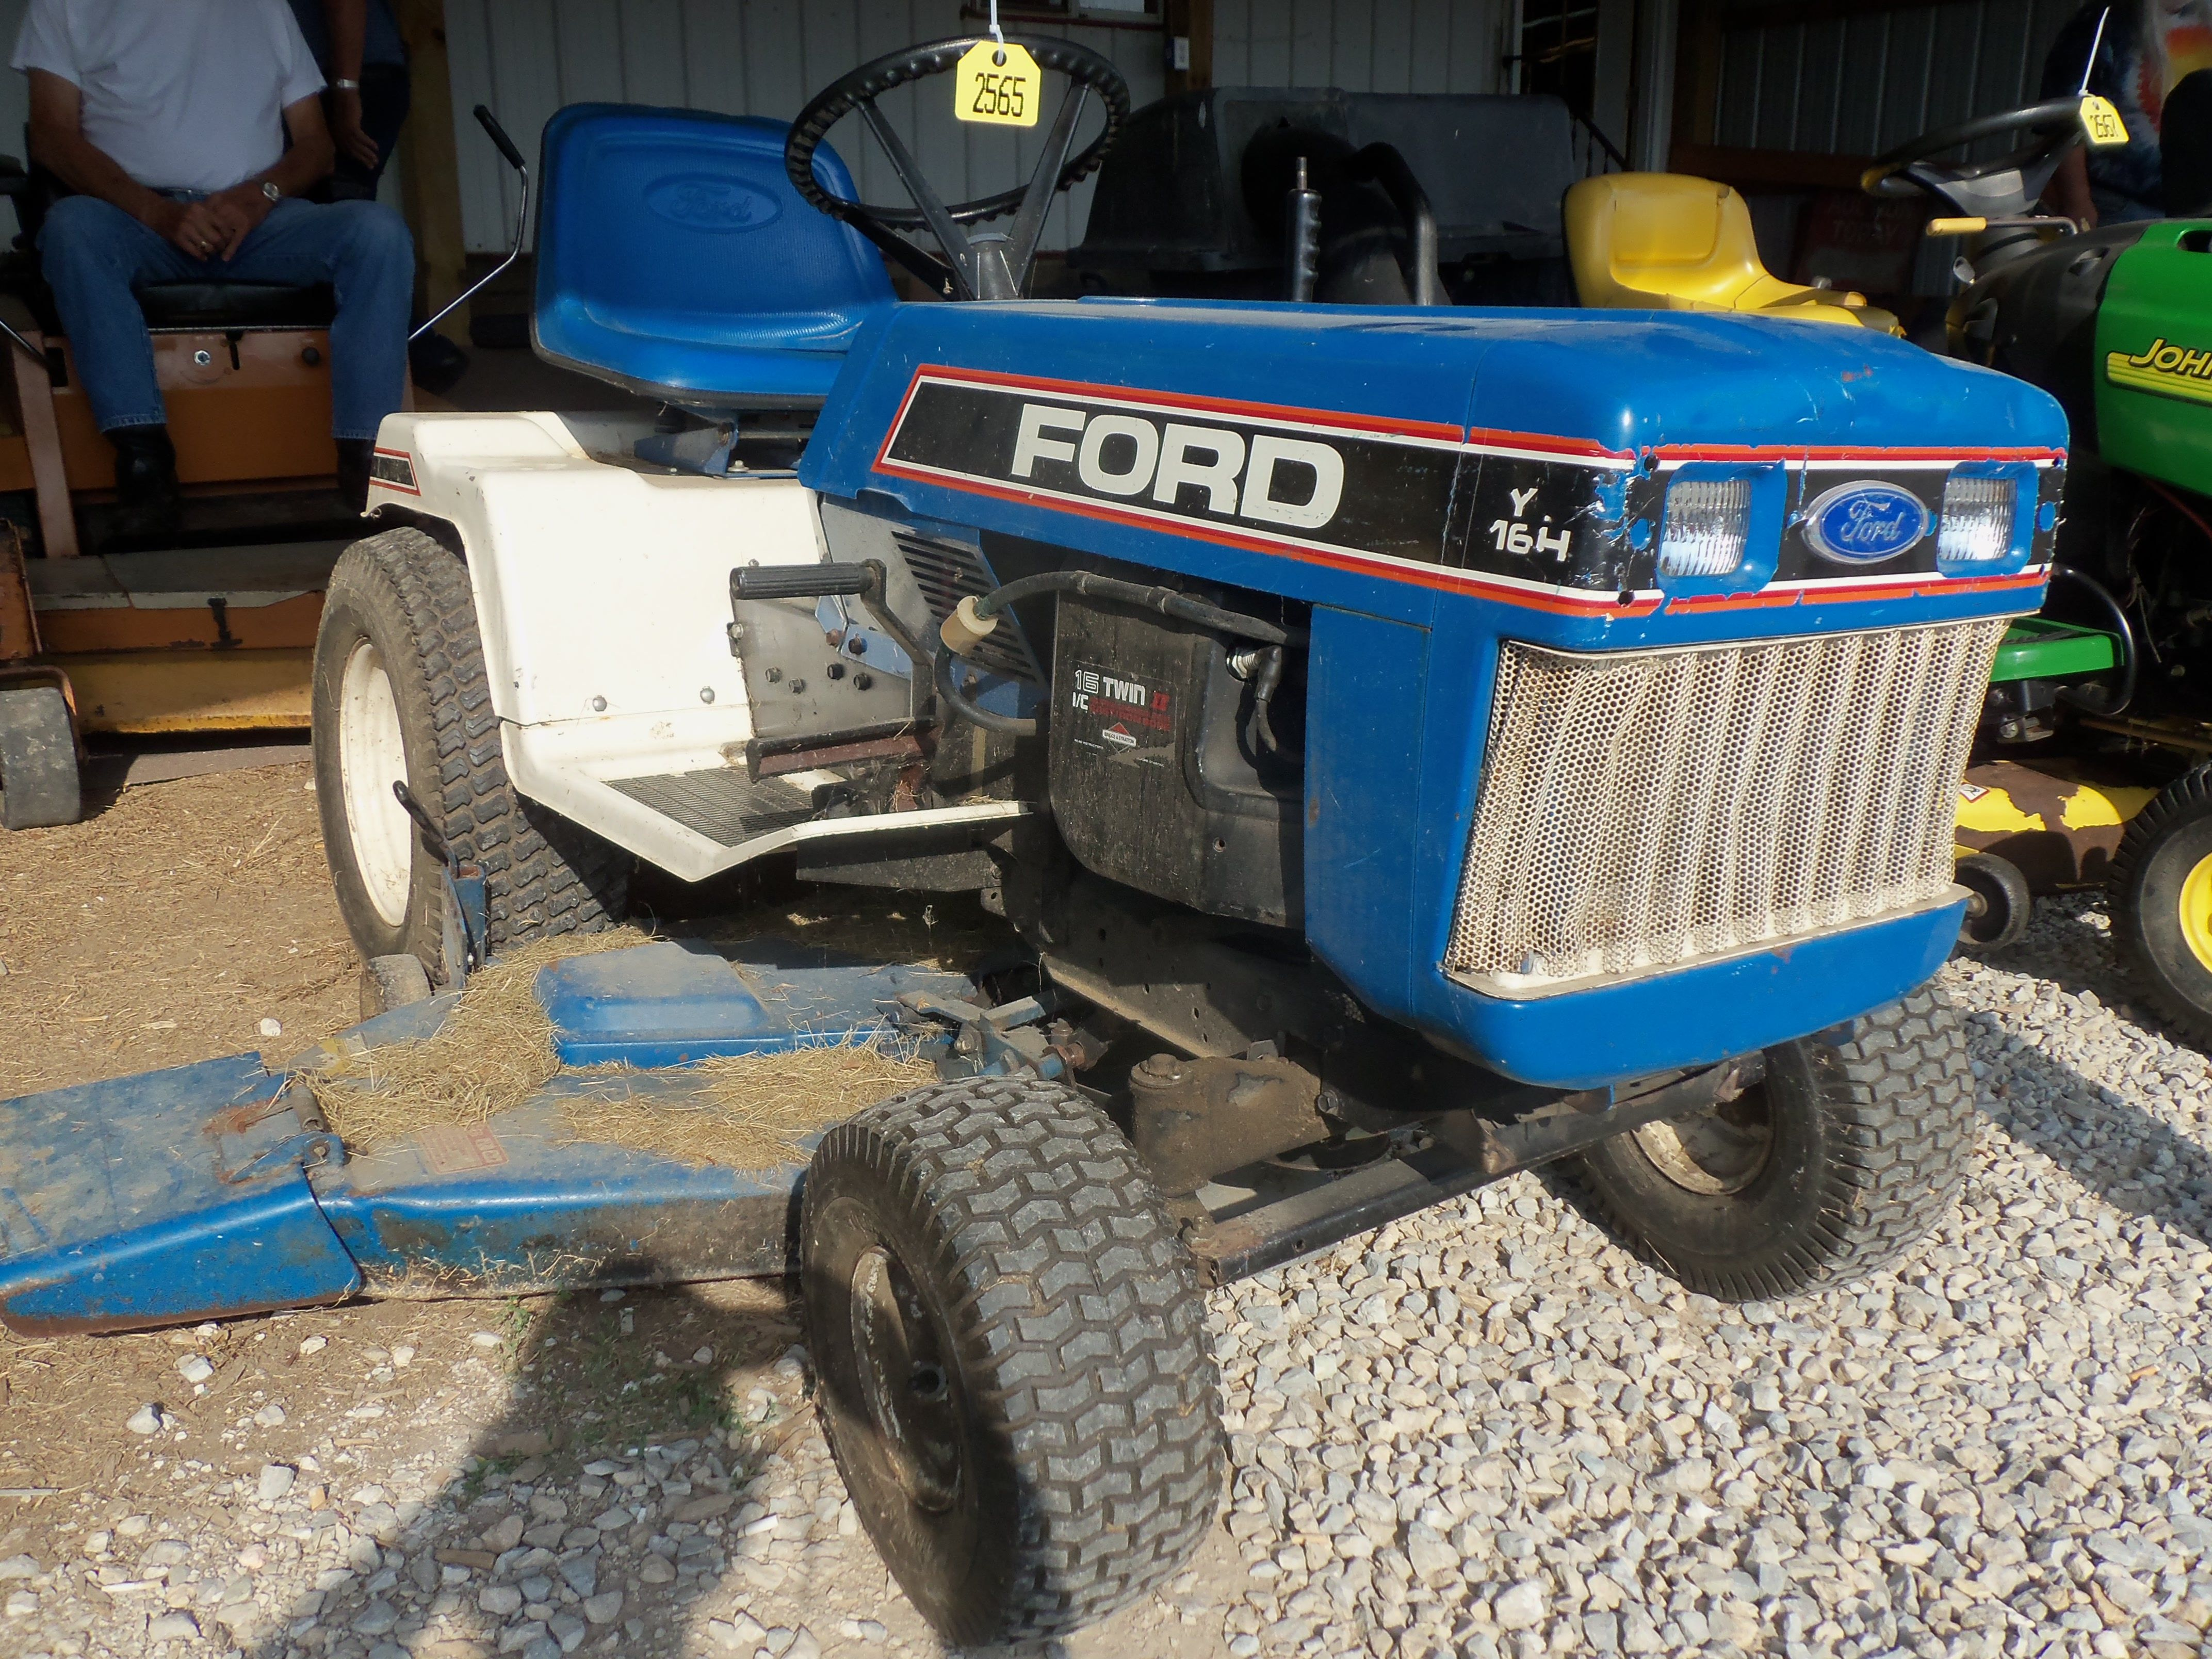 hight resolution of ford yt16h garden lawn tractor sold for 150 00 16hp 608 lbs